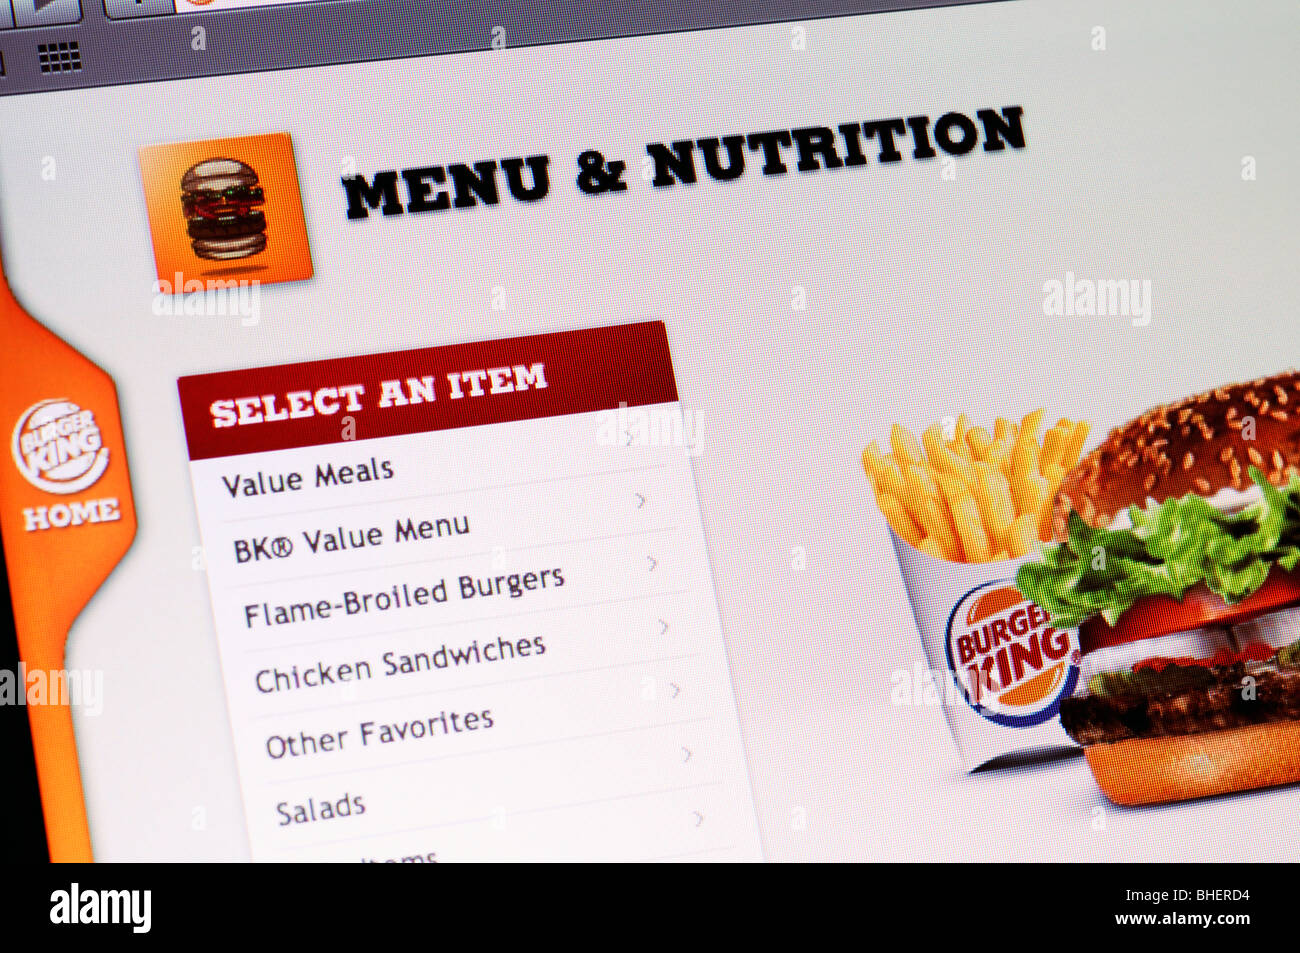 Online Fast Food Stock Photos & Online Fast Food Stock Images - Alamy